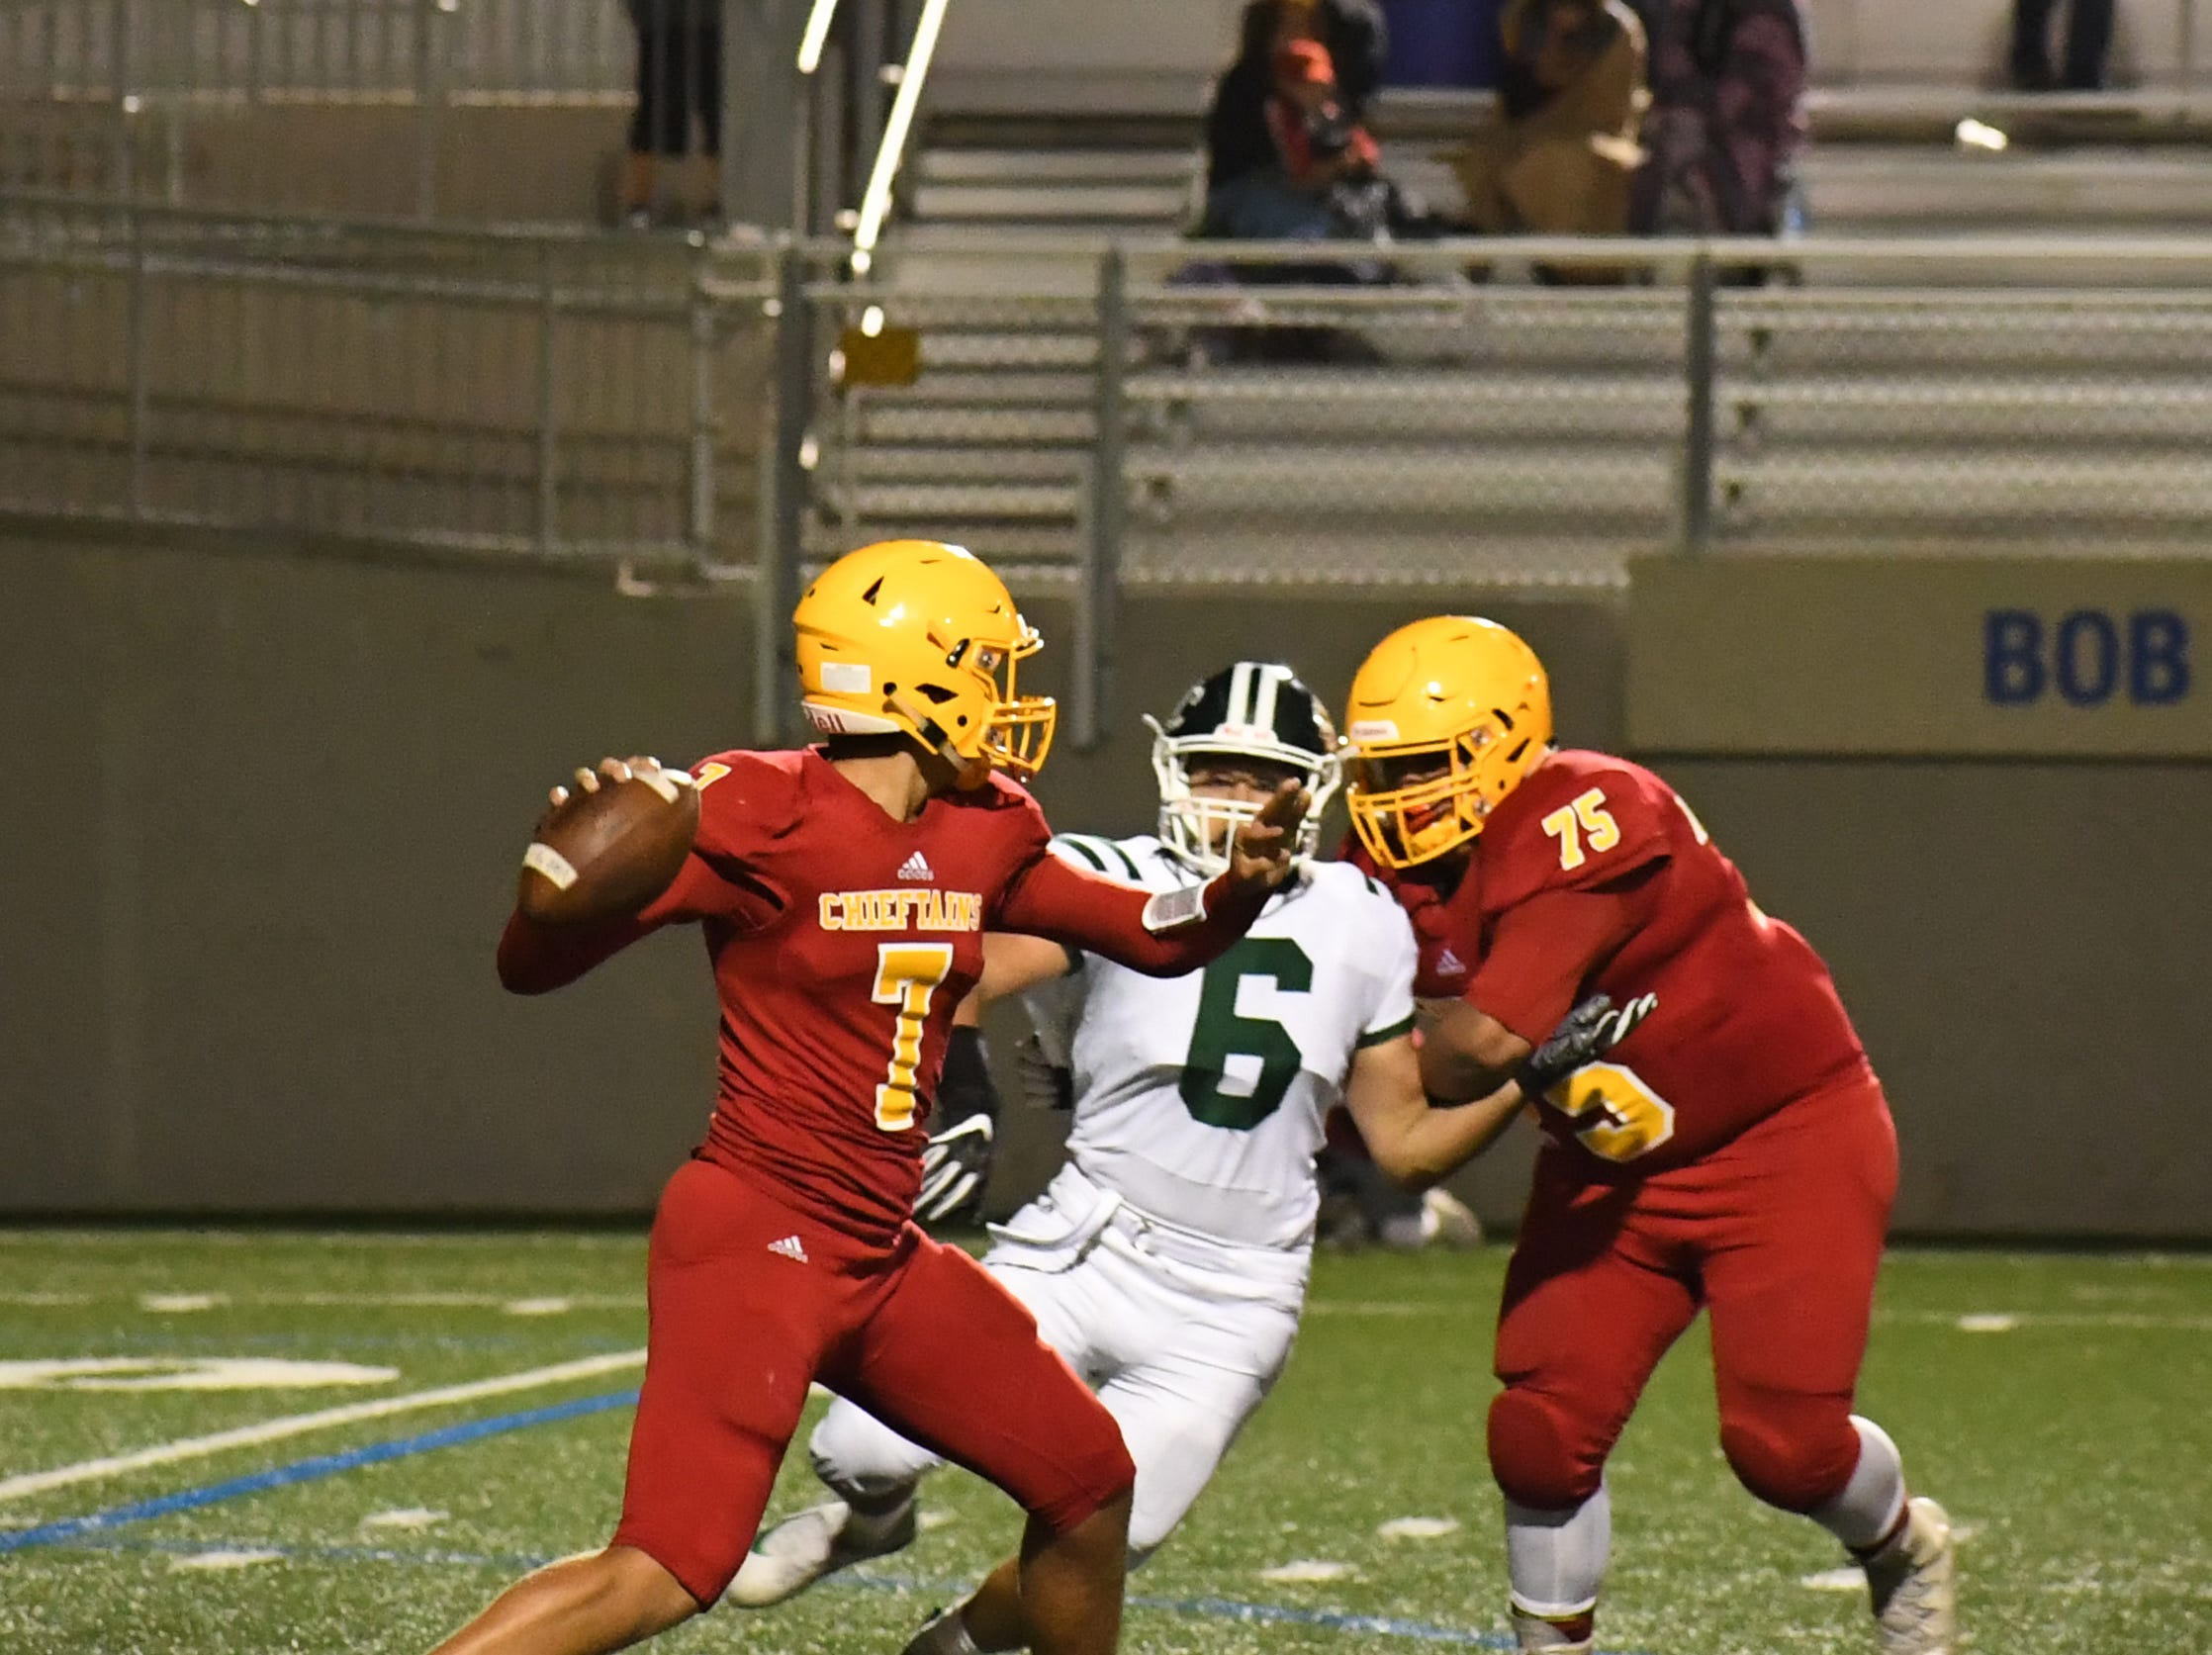 Palma senior quarterback Grant Sergent (7) has to throw the ball to avoid pressure from Sacred Heart Cathedral's defense.